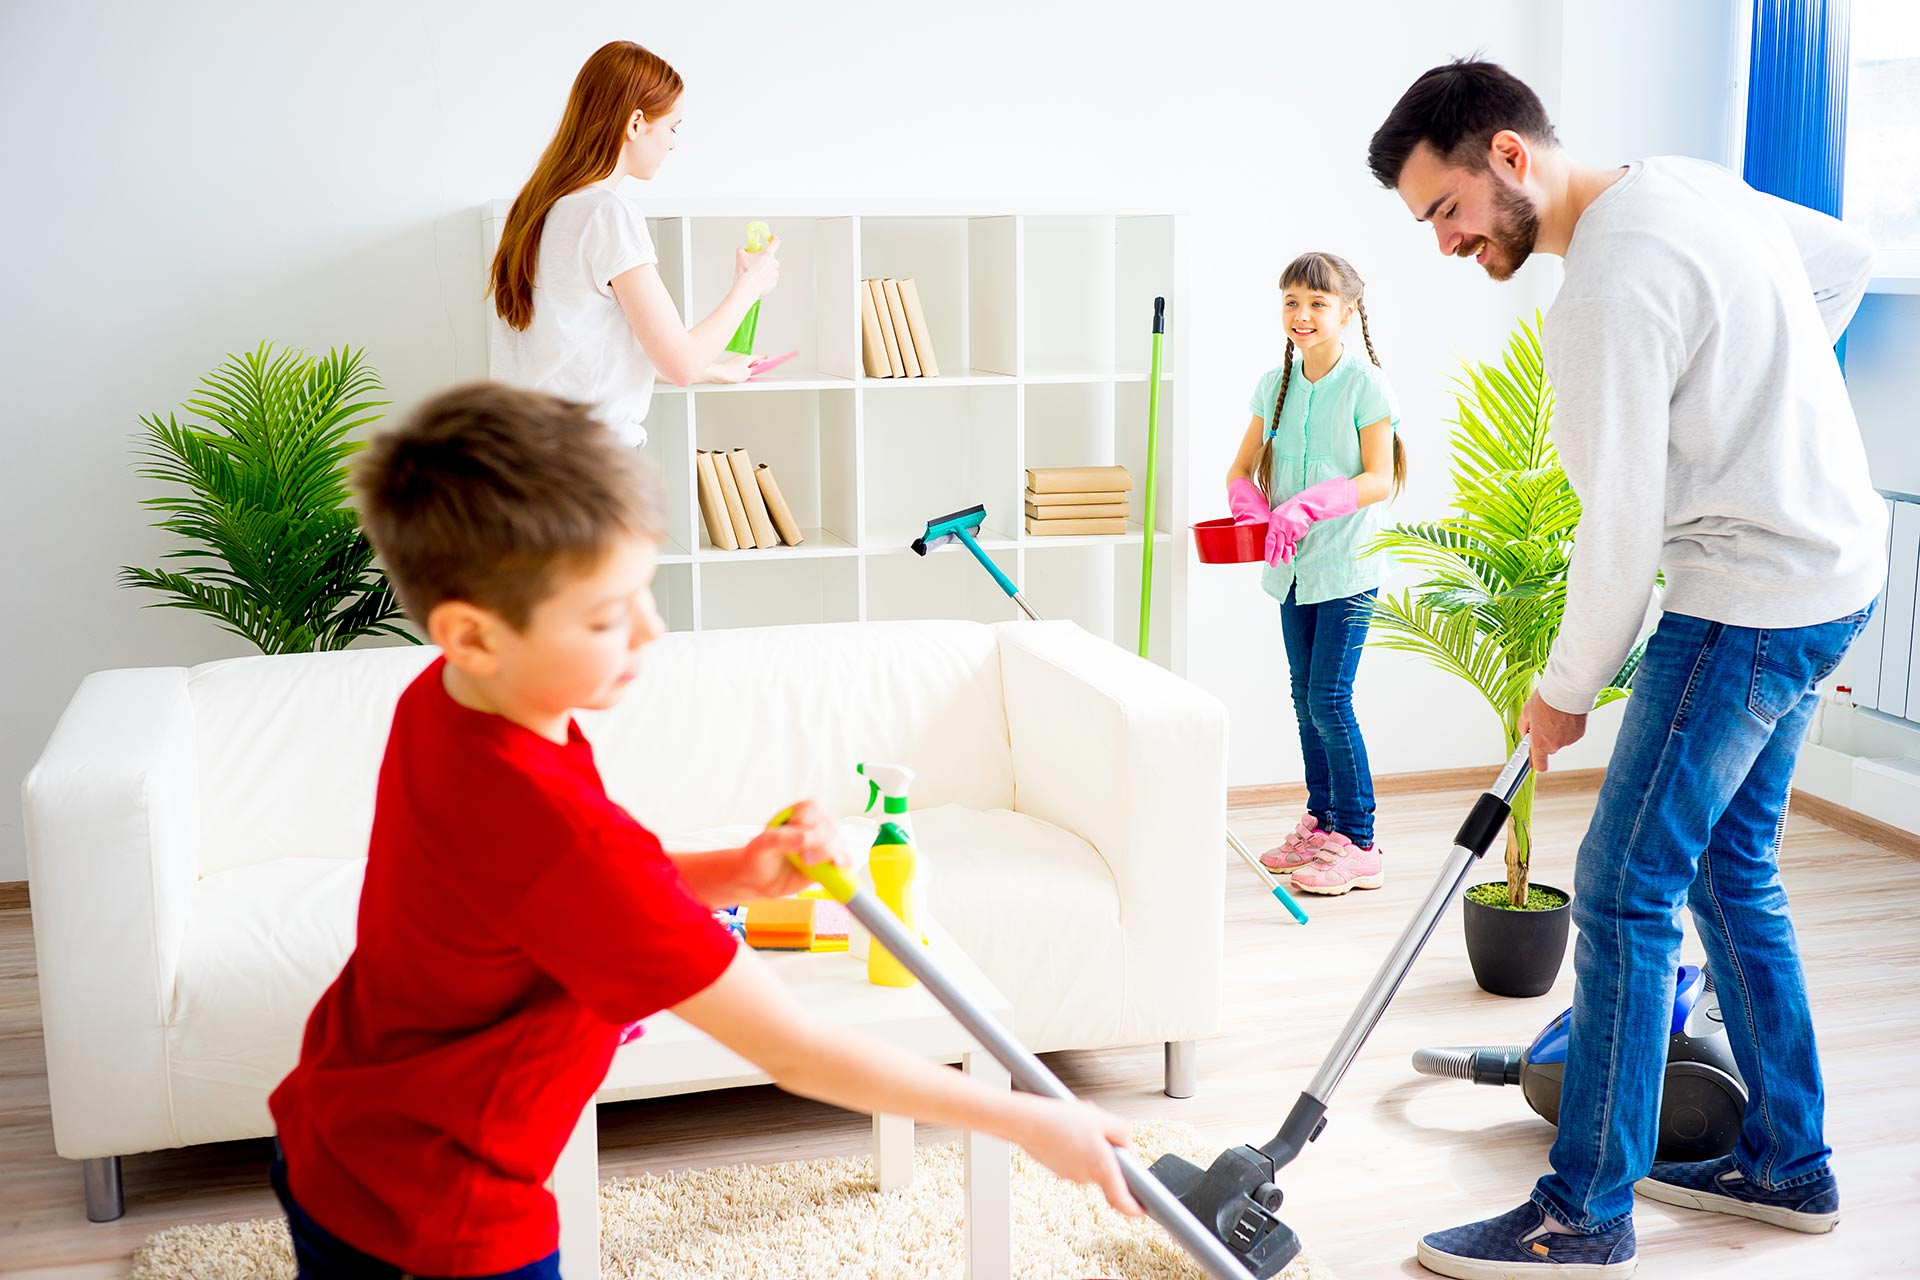 A family cleaning the house before going away on vacation.